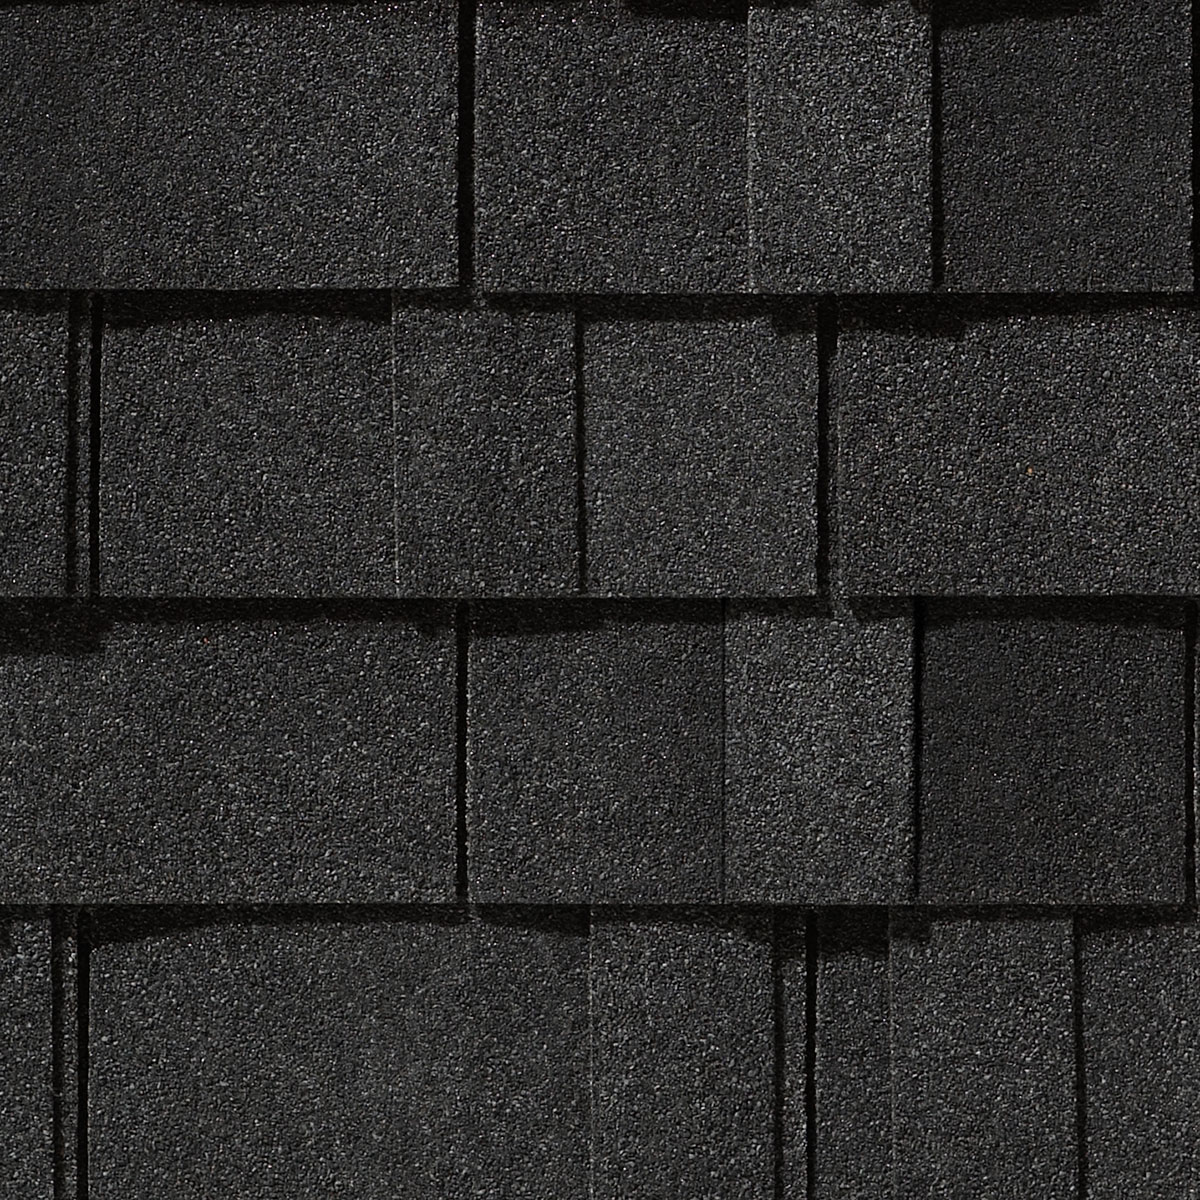 CT Independence Charcoal Black <br>(CTINCHBL)  <br>4 Bdl/Sq